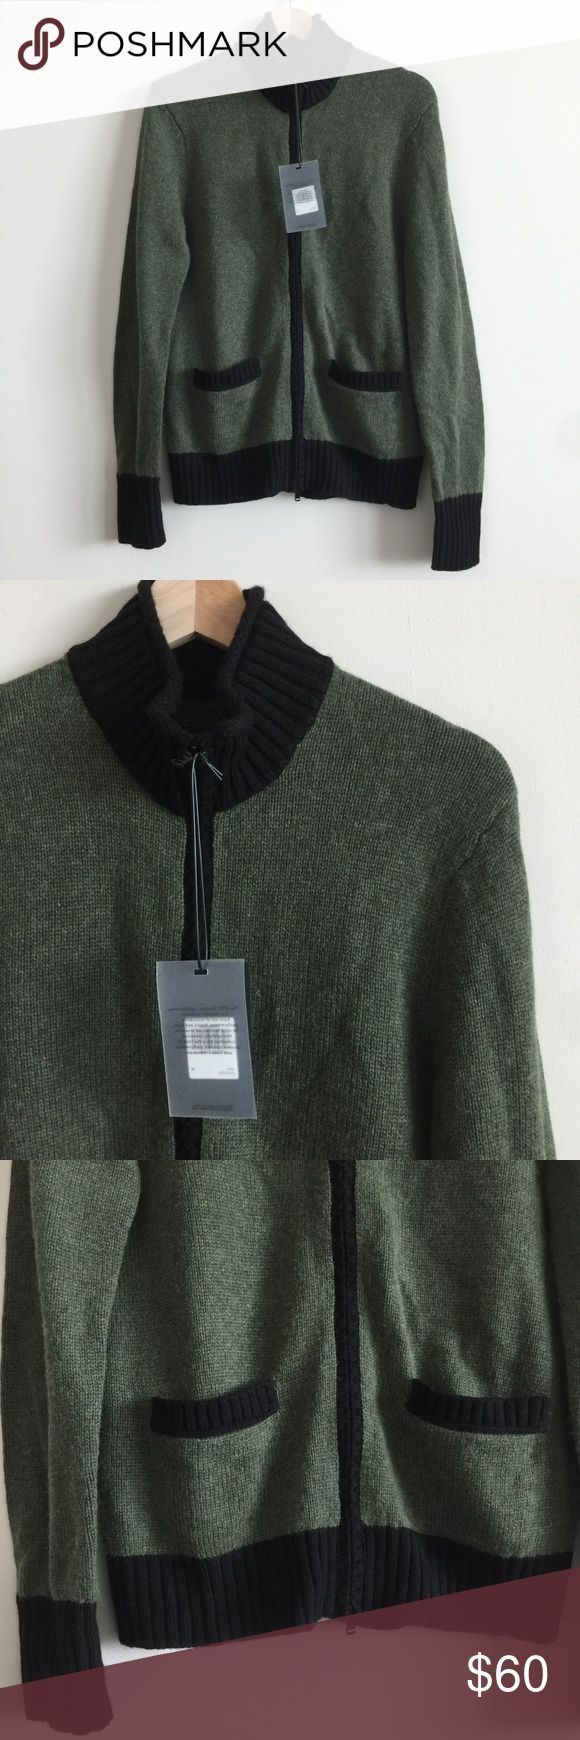 EFM/Dockers Men's Zip Cardigan Sweater 🌷Please Read the description! Thanks!🌷  Brand new with tag Size: M Retail: $210 Measurements: arm pit to arm pit  Color may be slightly  different bcz of lighting  🌈💯AUTHENTIC 🌈All sales are final 🚭Smoke & Pet free home 🙅NO TRADES  🙅NO HOLDS Dockers Sweaters Cardigan